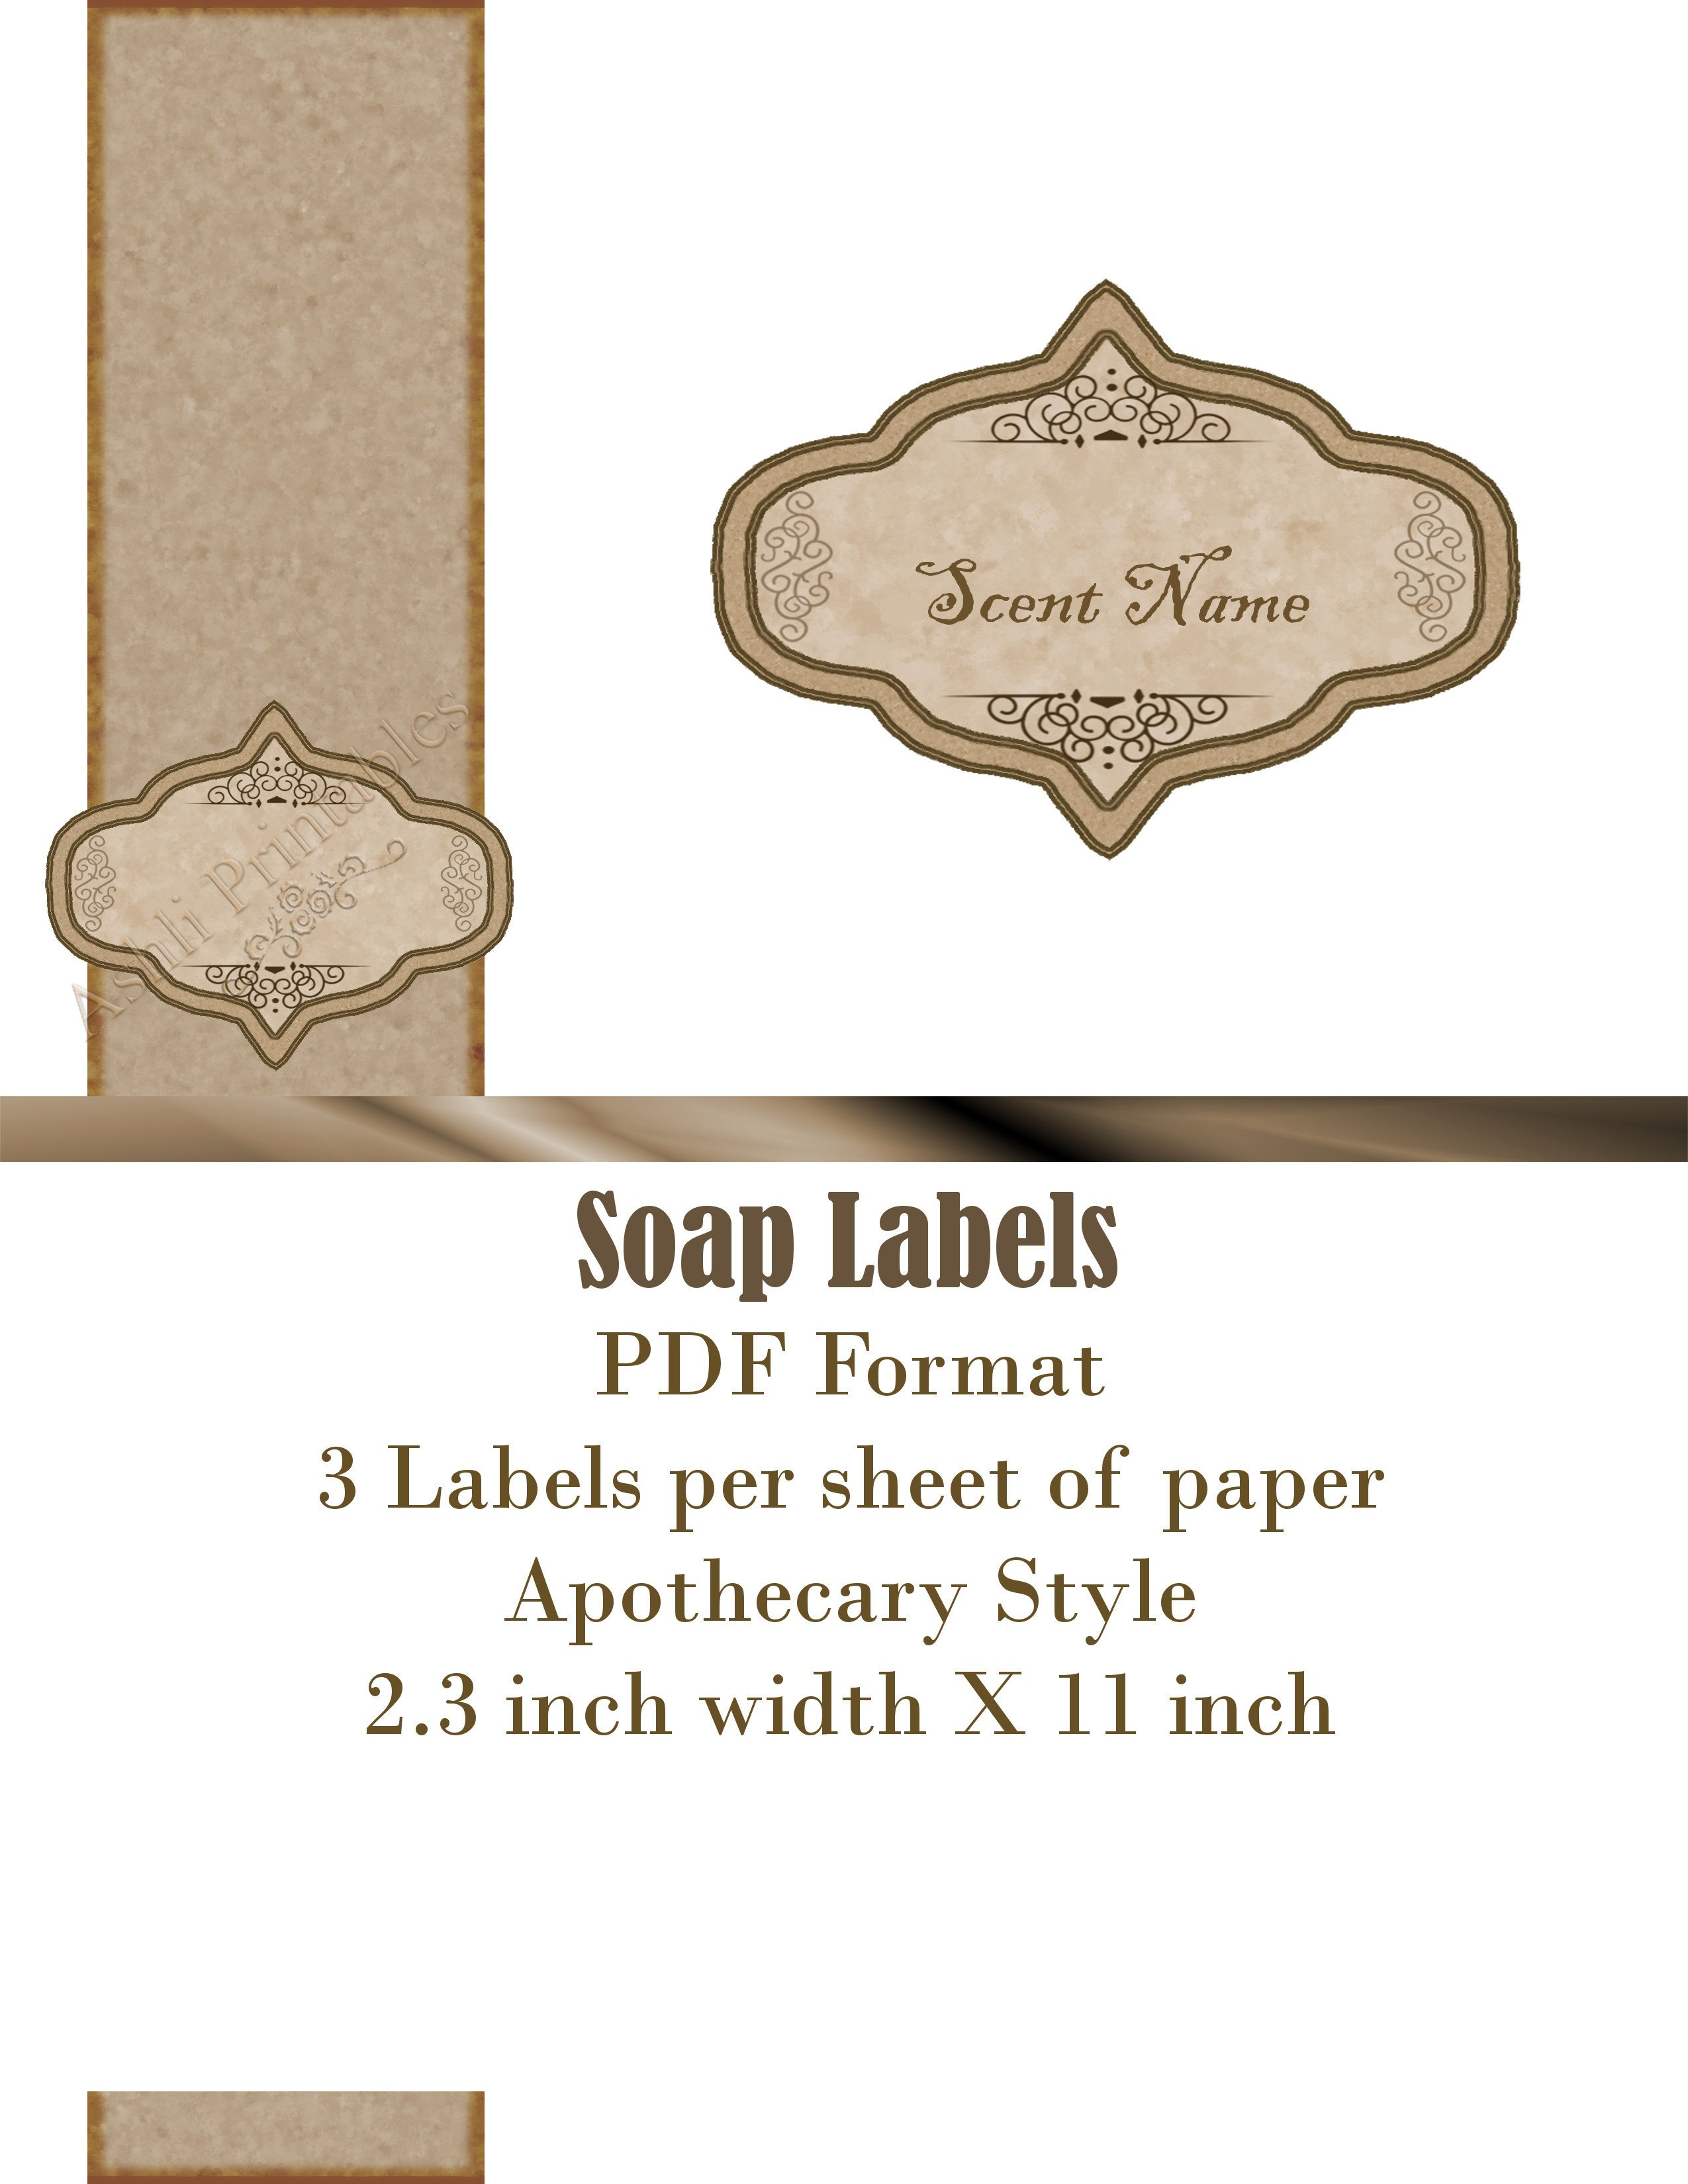 Free soap Label Templates Printable Labels ashlisoapblog